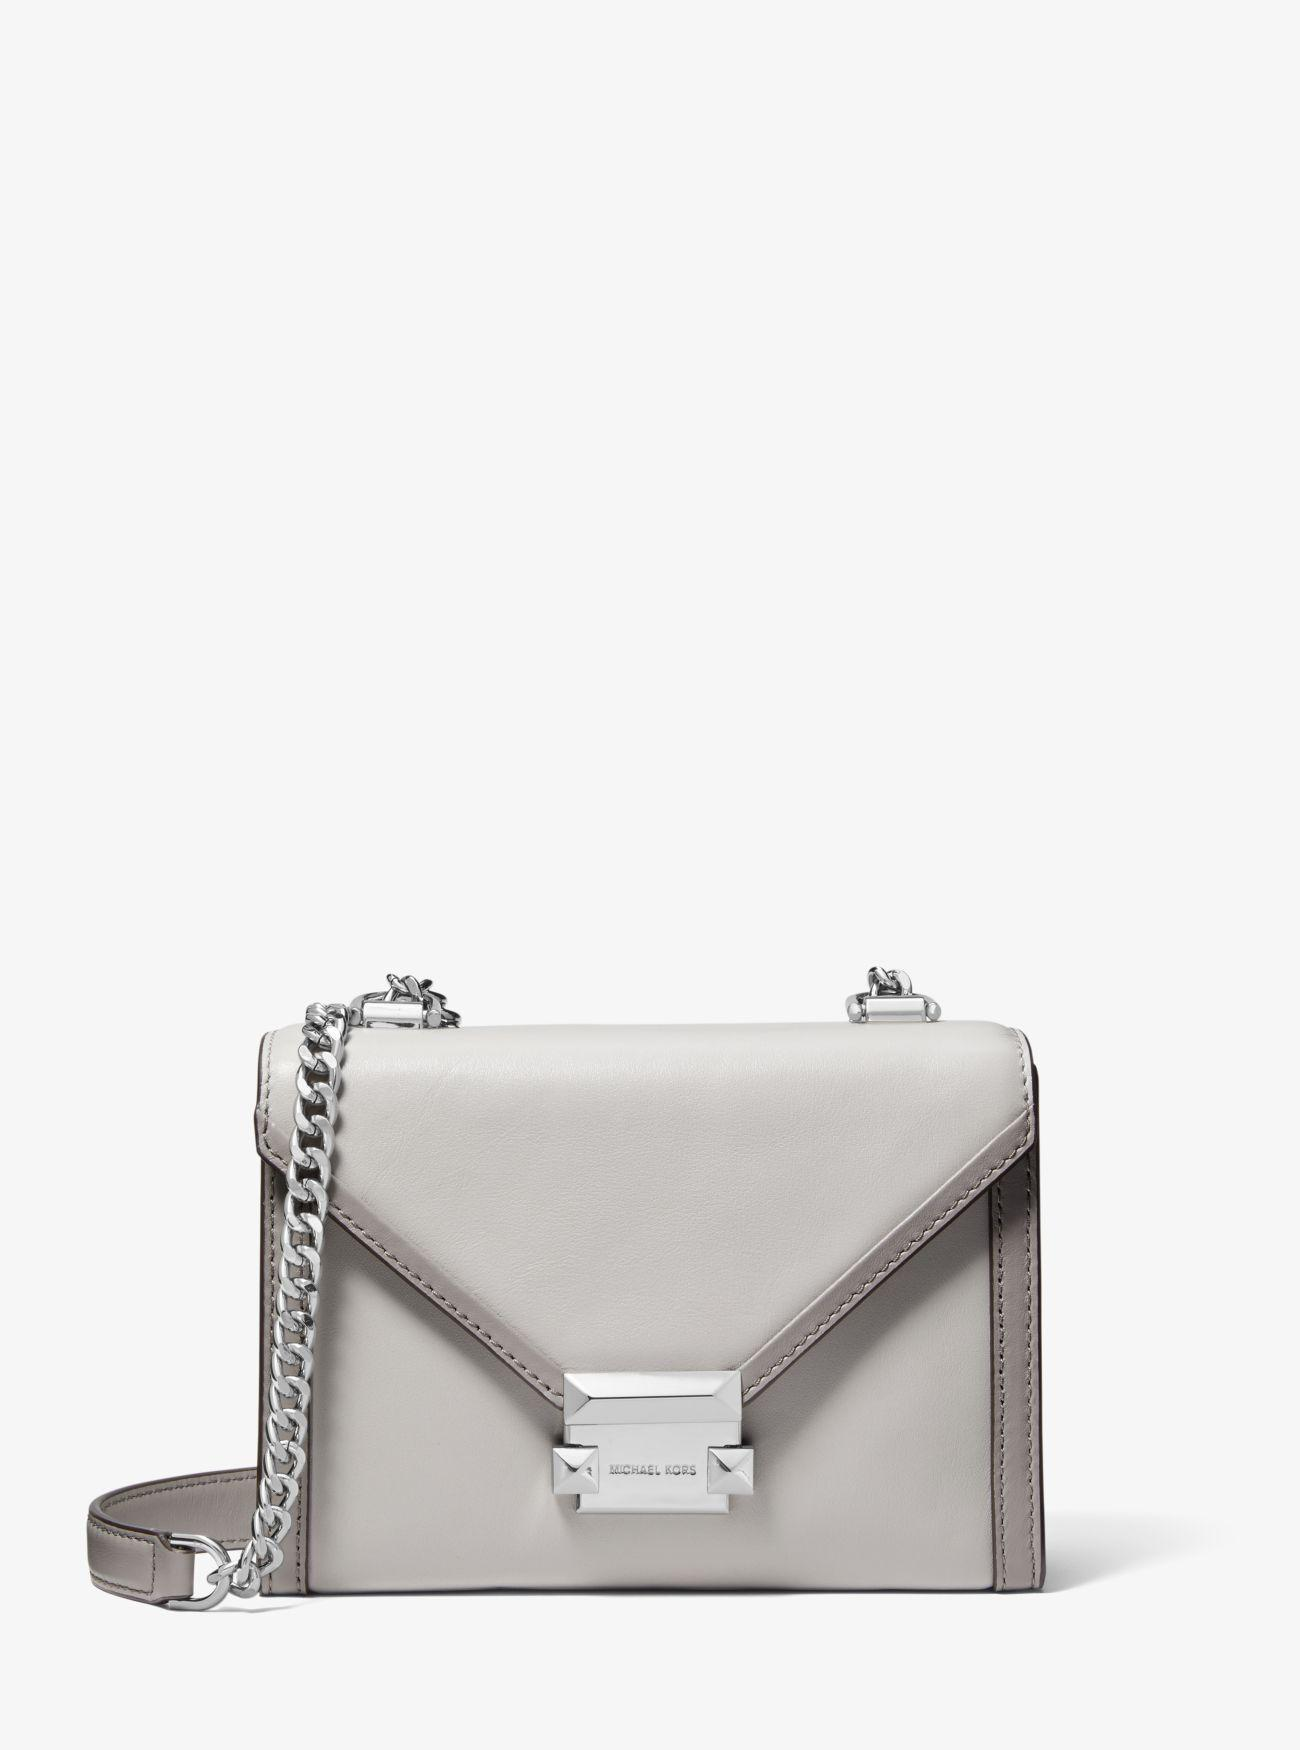 f572db8e36743 Michael Kors - Multicolor Whitney Small Two-tone Leather Convertible  Shoulder Bag - Lyst. View fullscreen